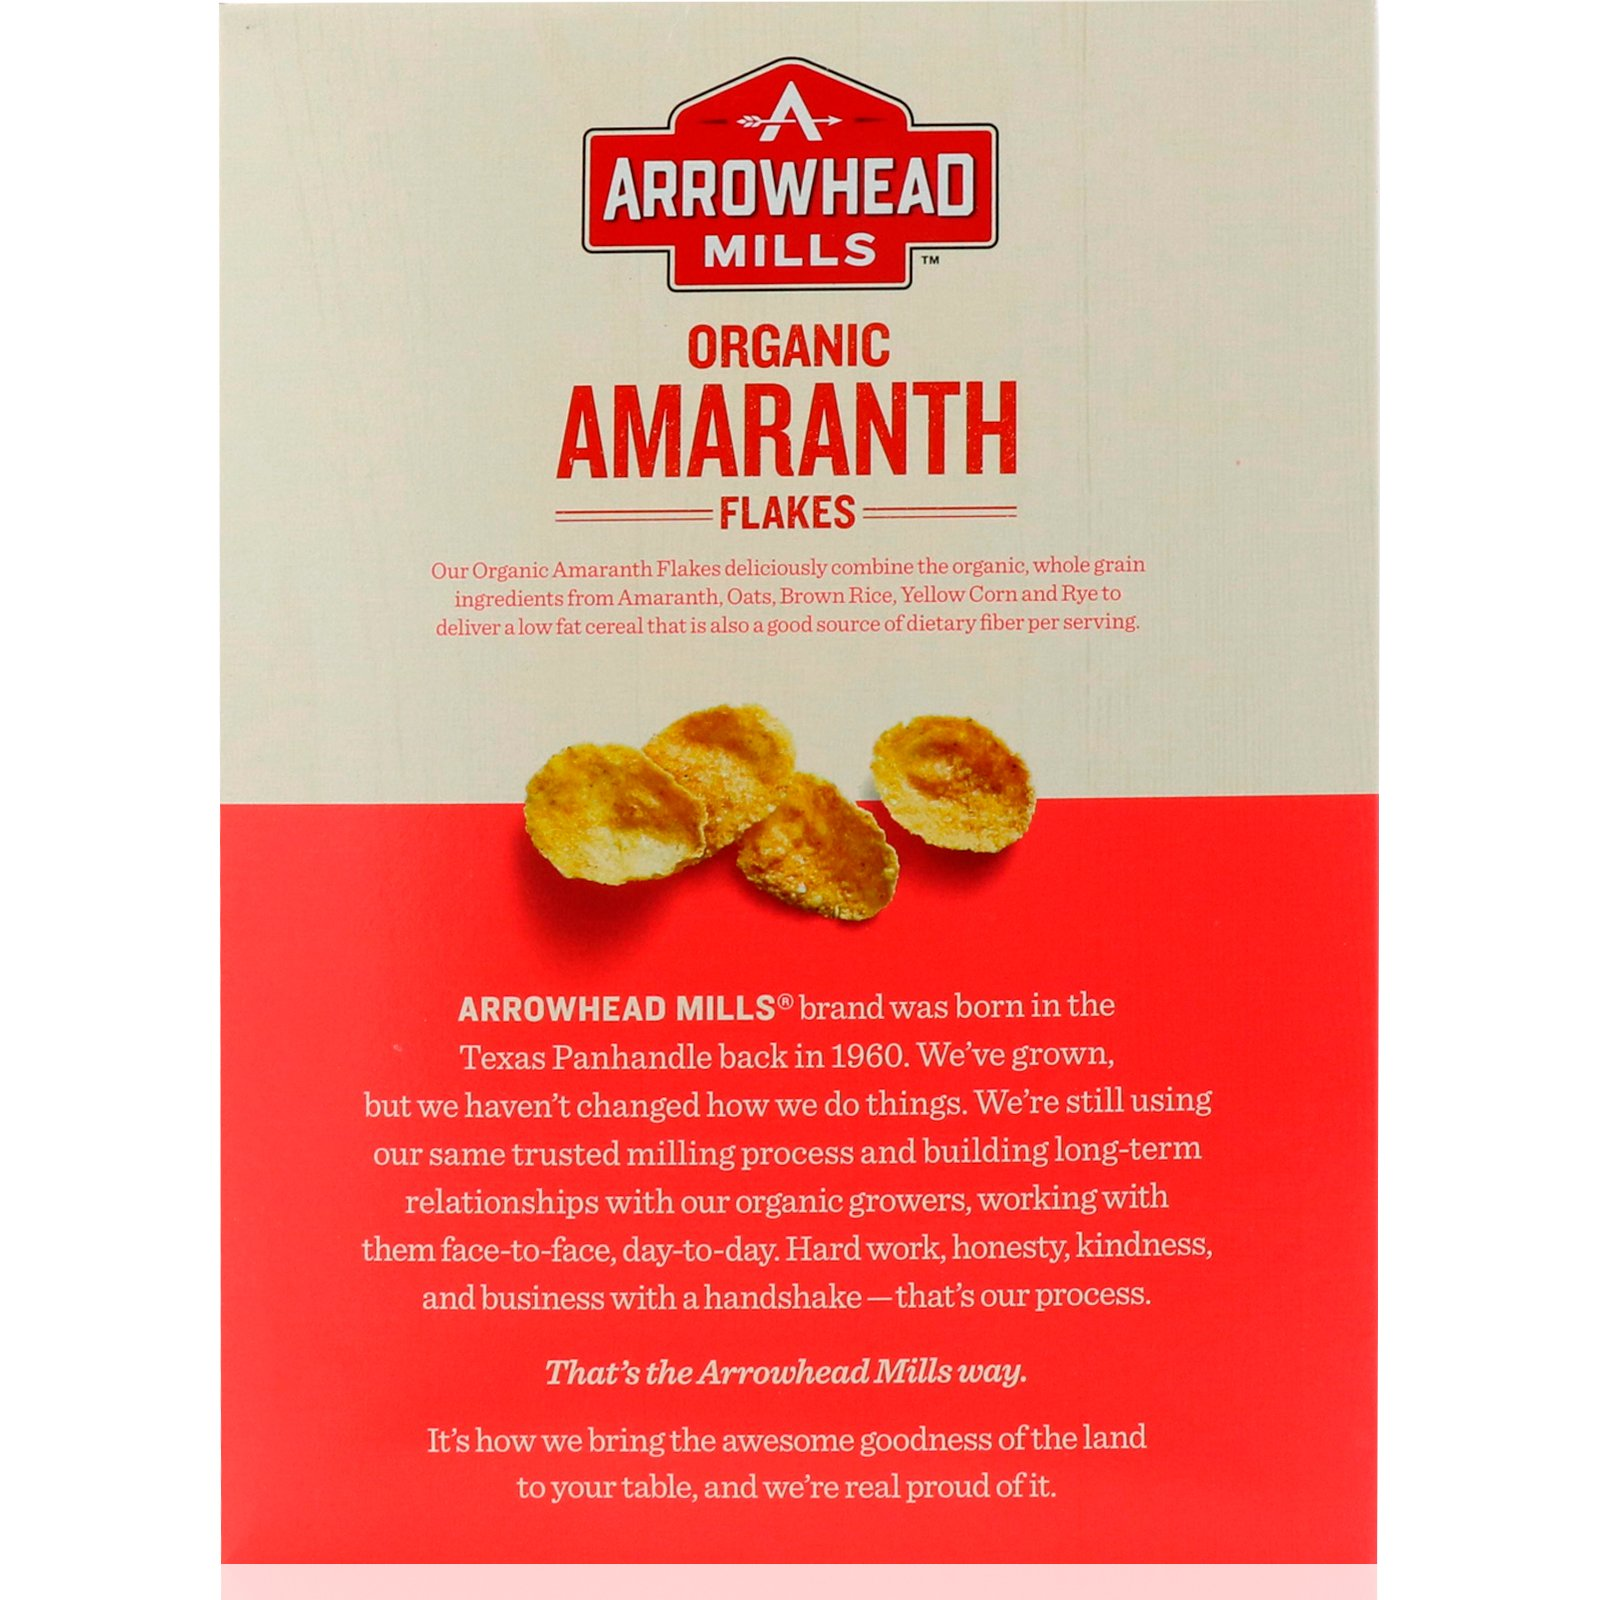 how to eat amaranth flakes